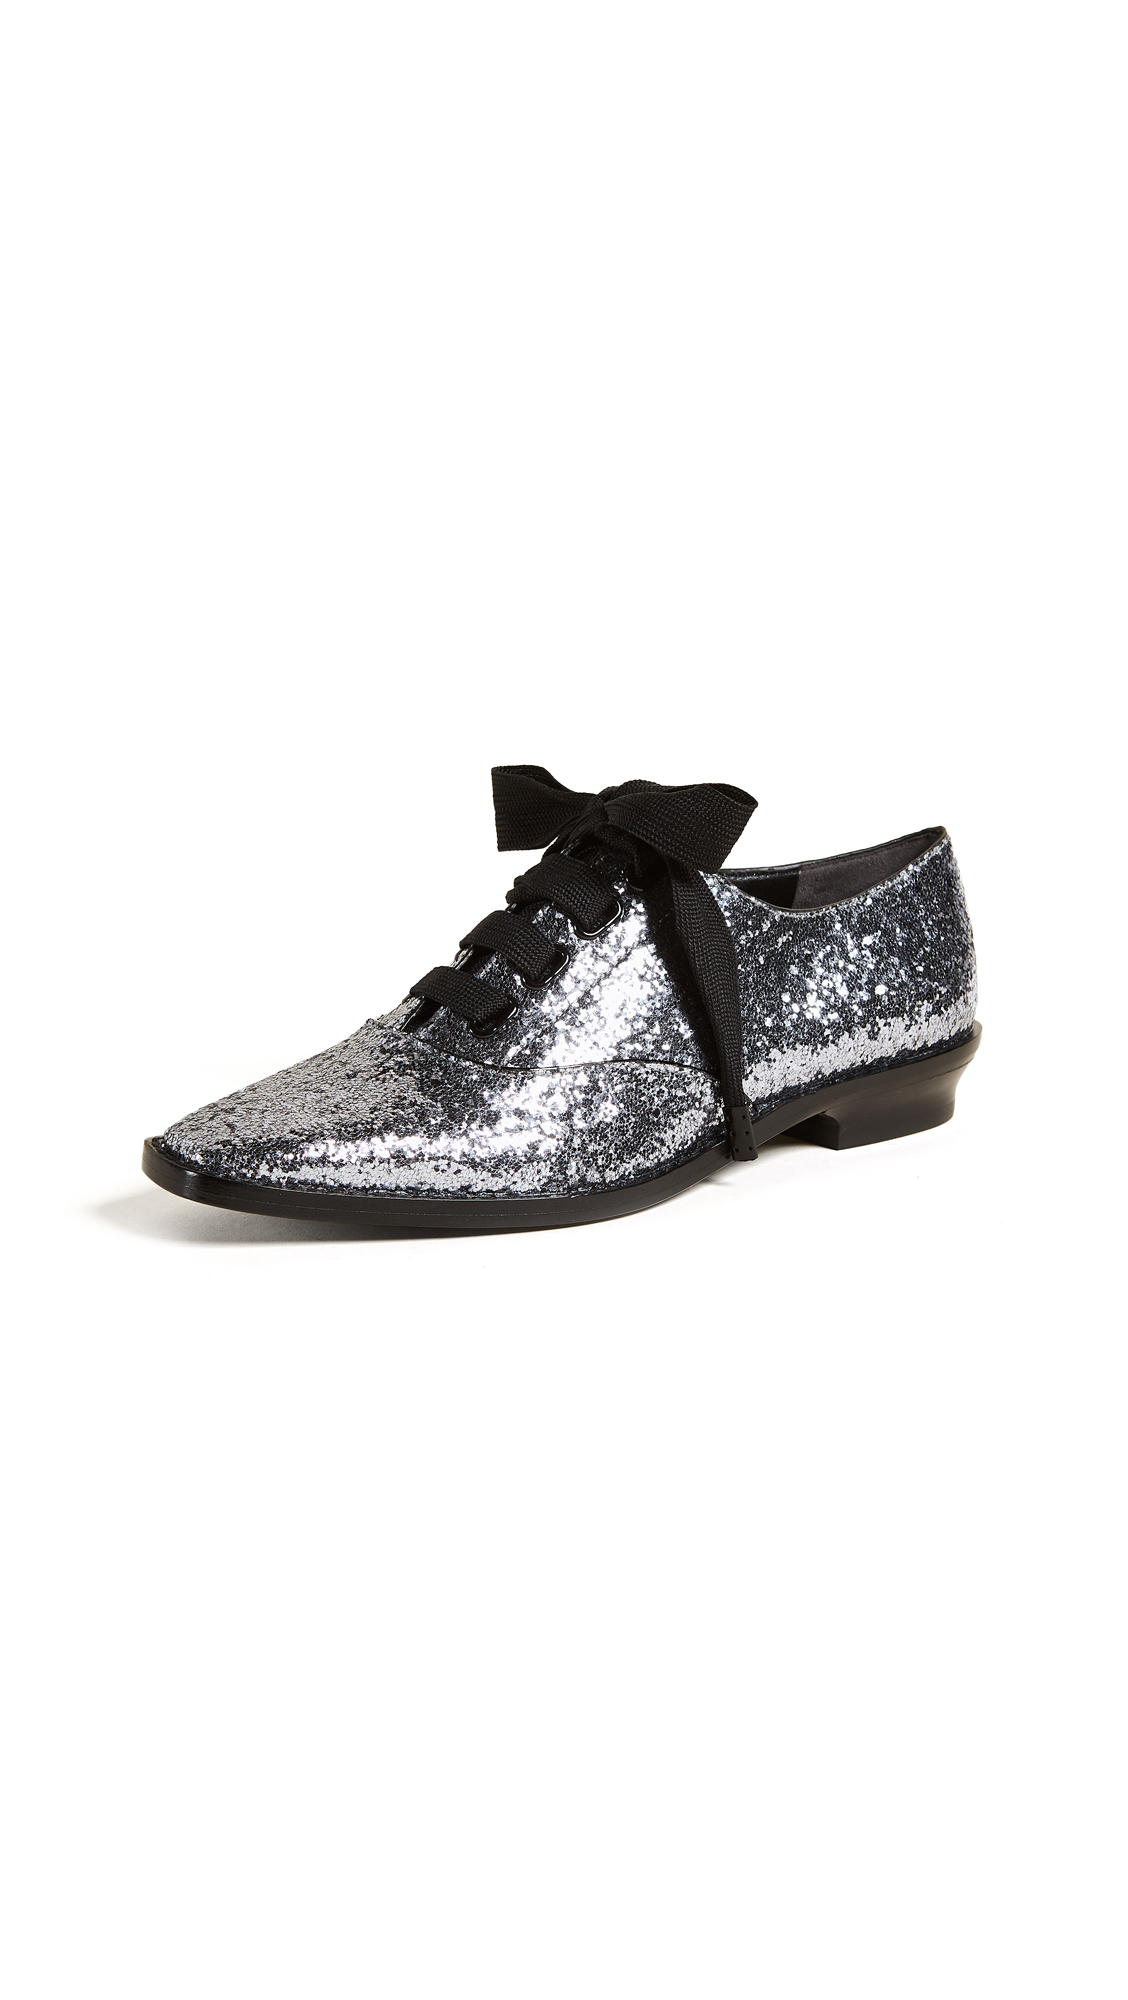 Marc Jacobs Brittany Lace Up Oxfords - Antique Silver